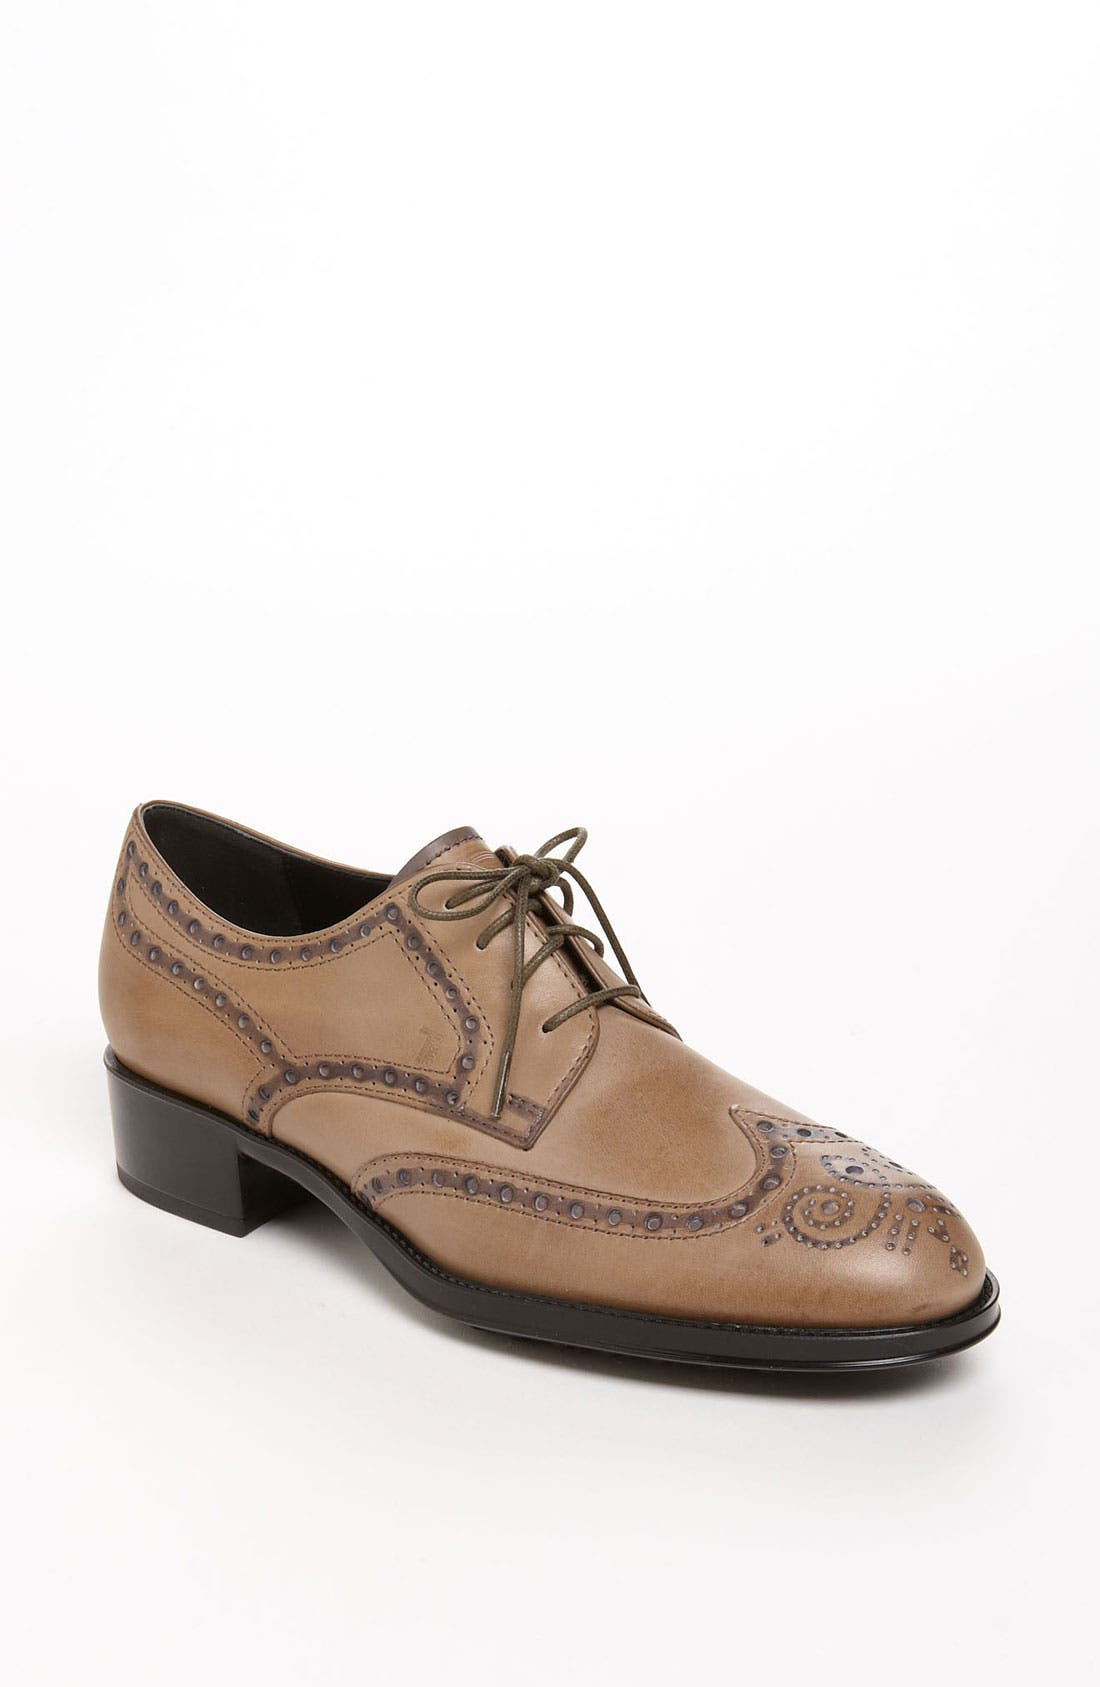 Alternate Image 1 Selected - Tod's 'Buccatore' Lace-Up Oxford